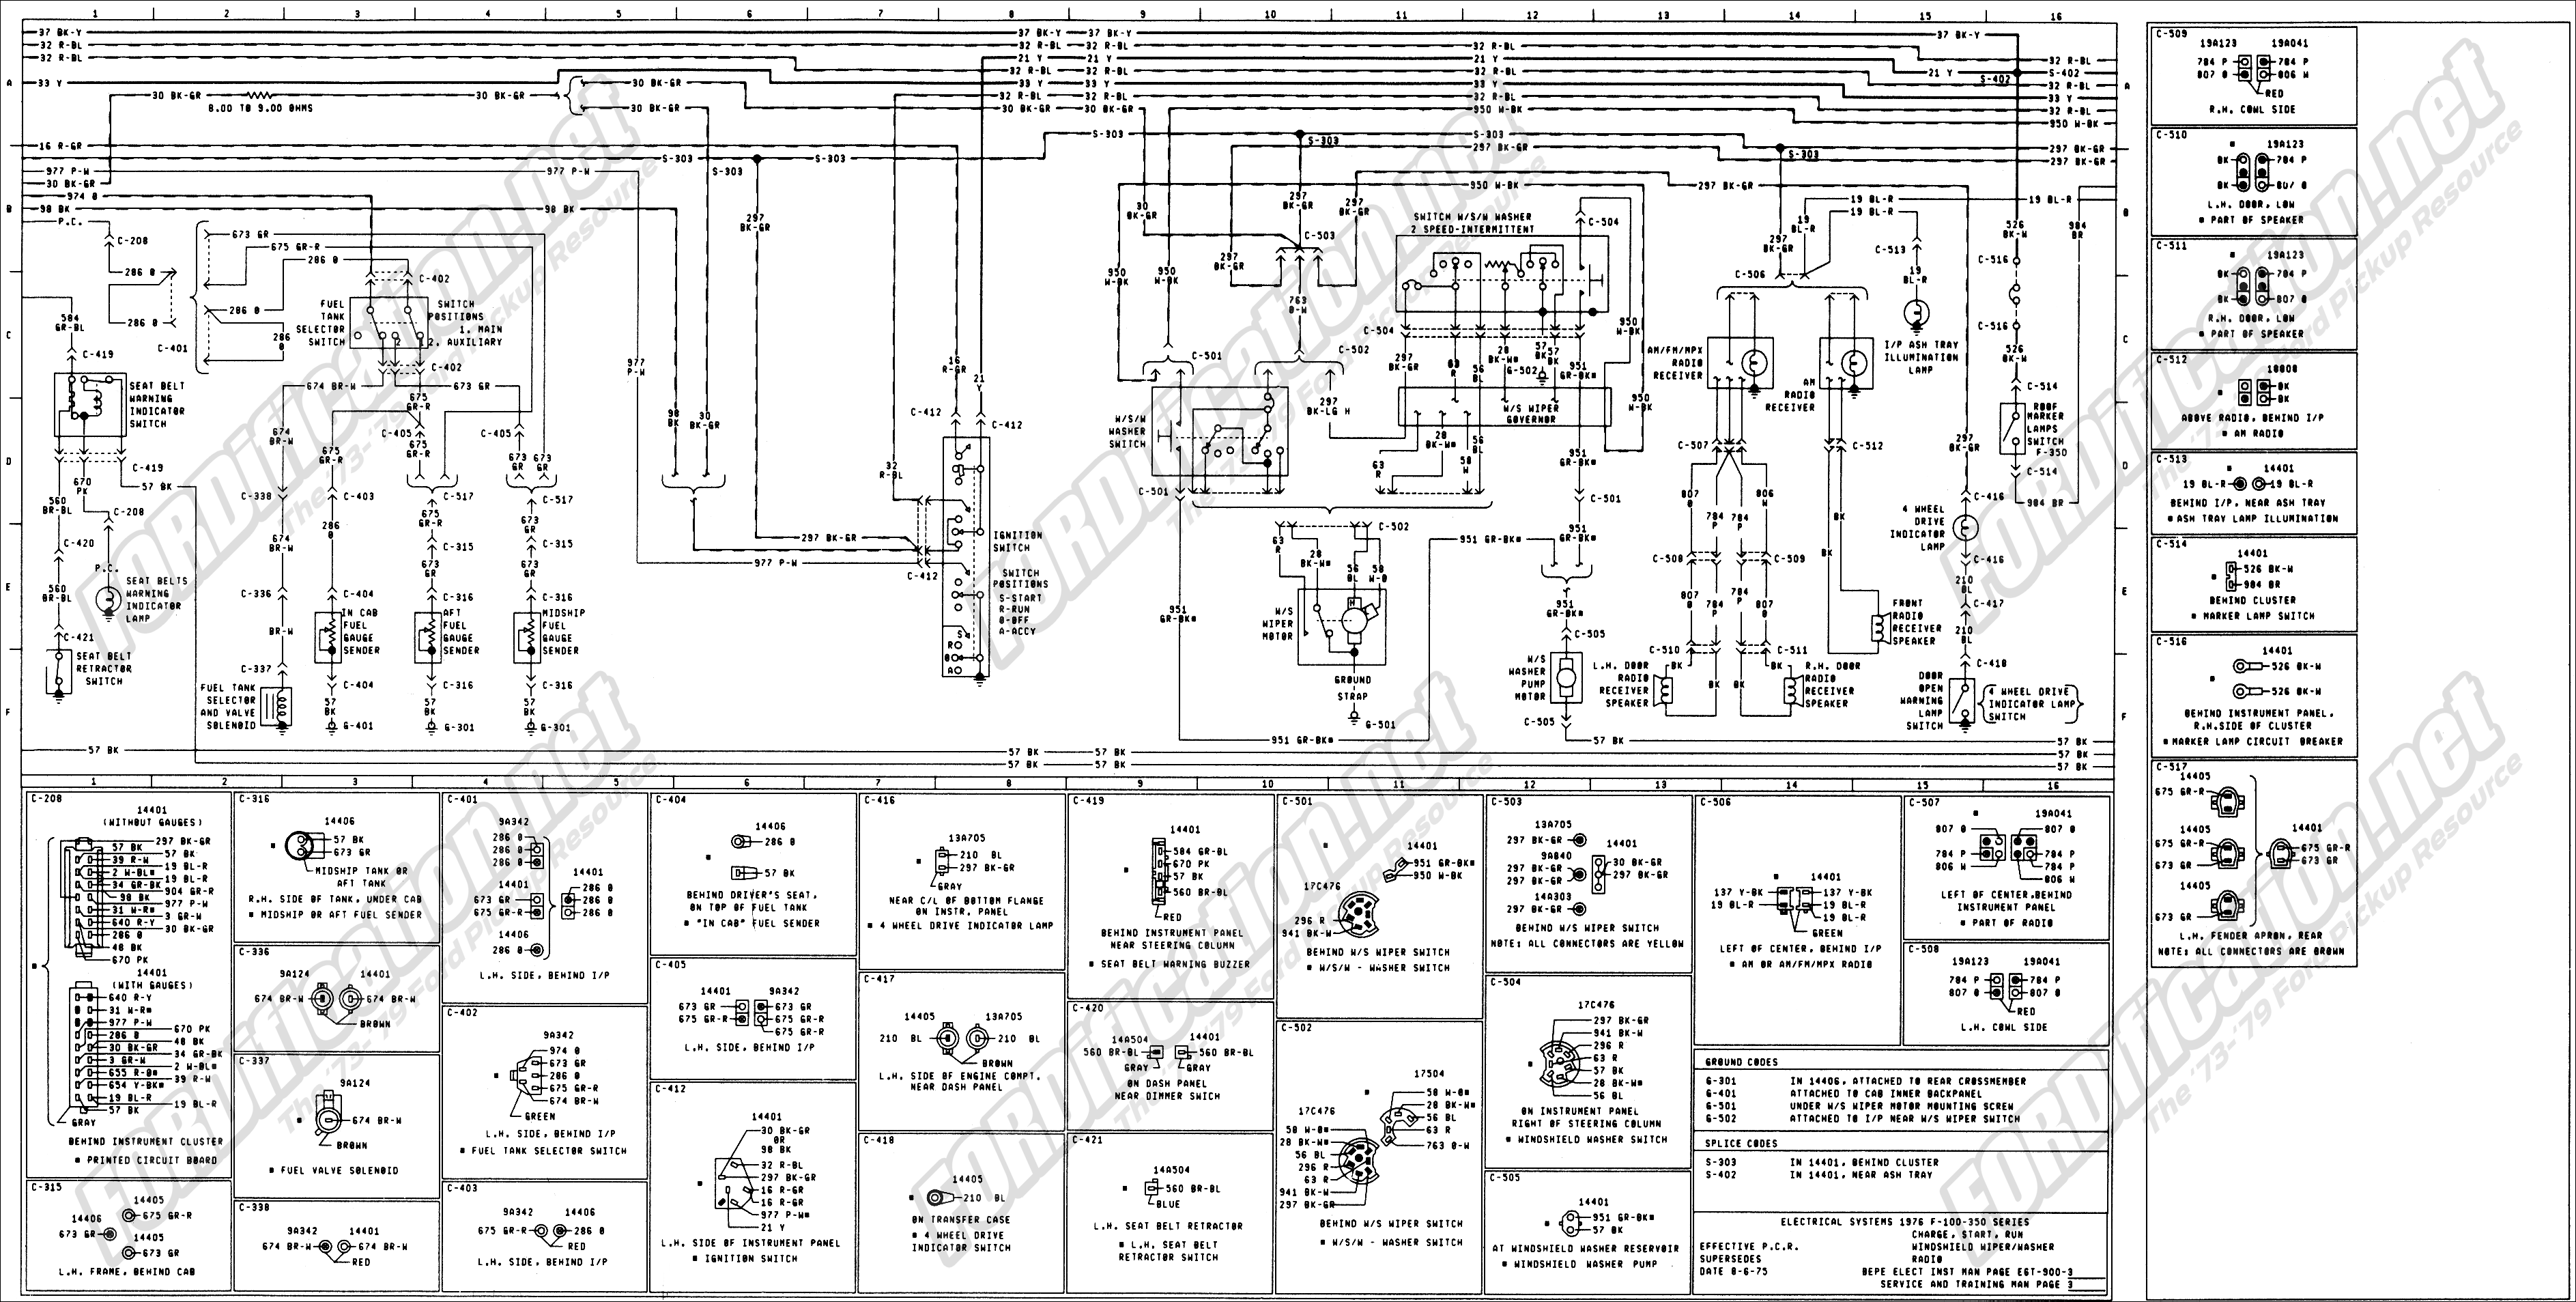 02 Ford F350 Wiring Diagram Diagrams Hubs 1999 Diesel Fuse Panel 1973 1979 Truck Schematics Fordification Net Toyota Highlander